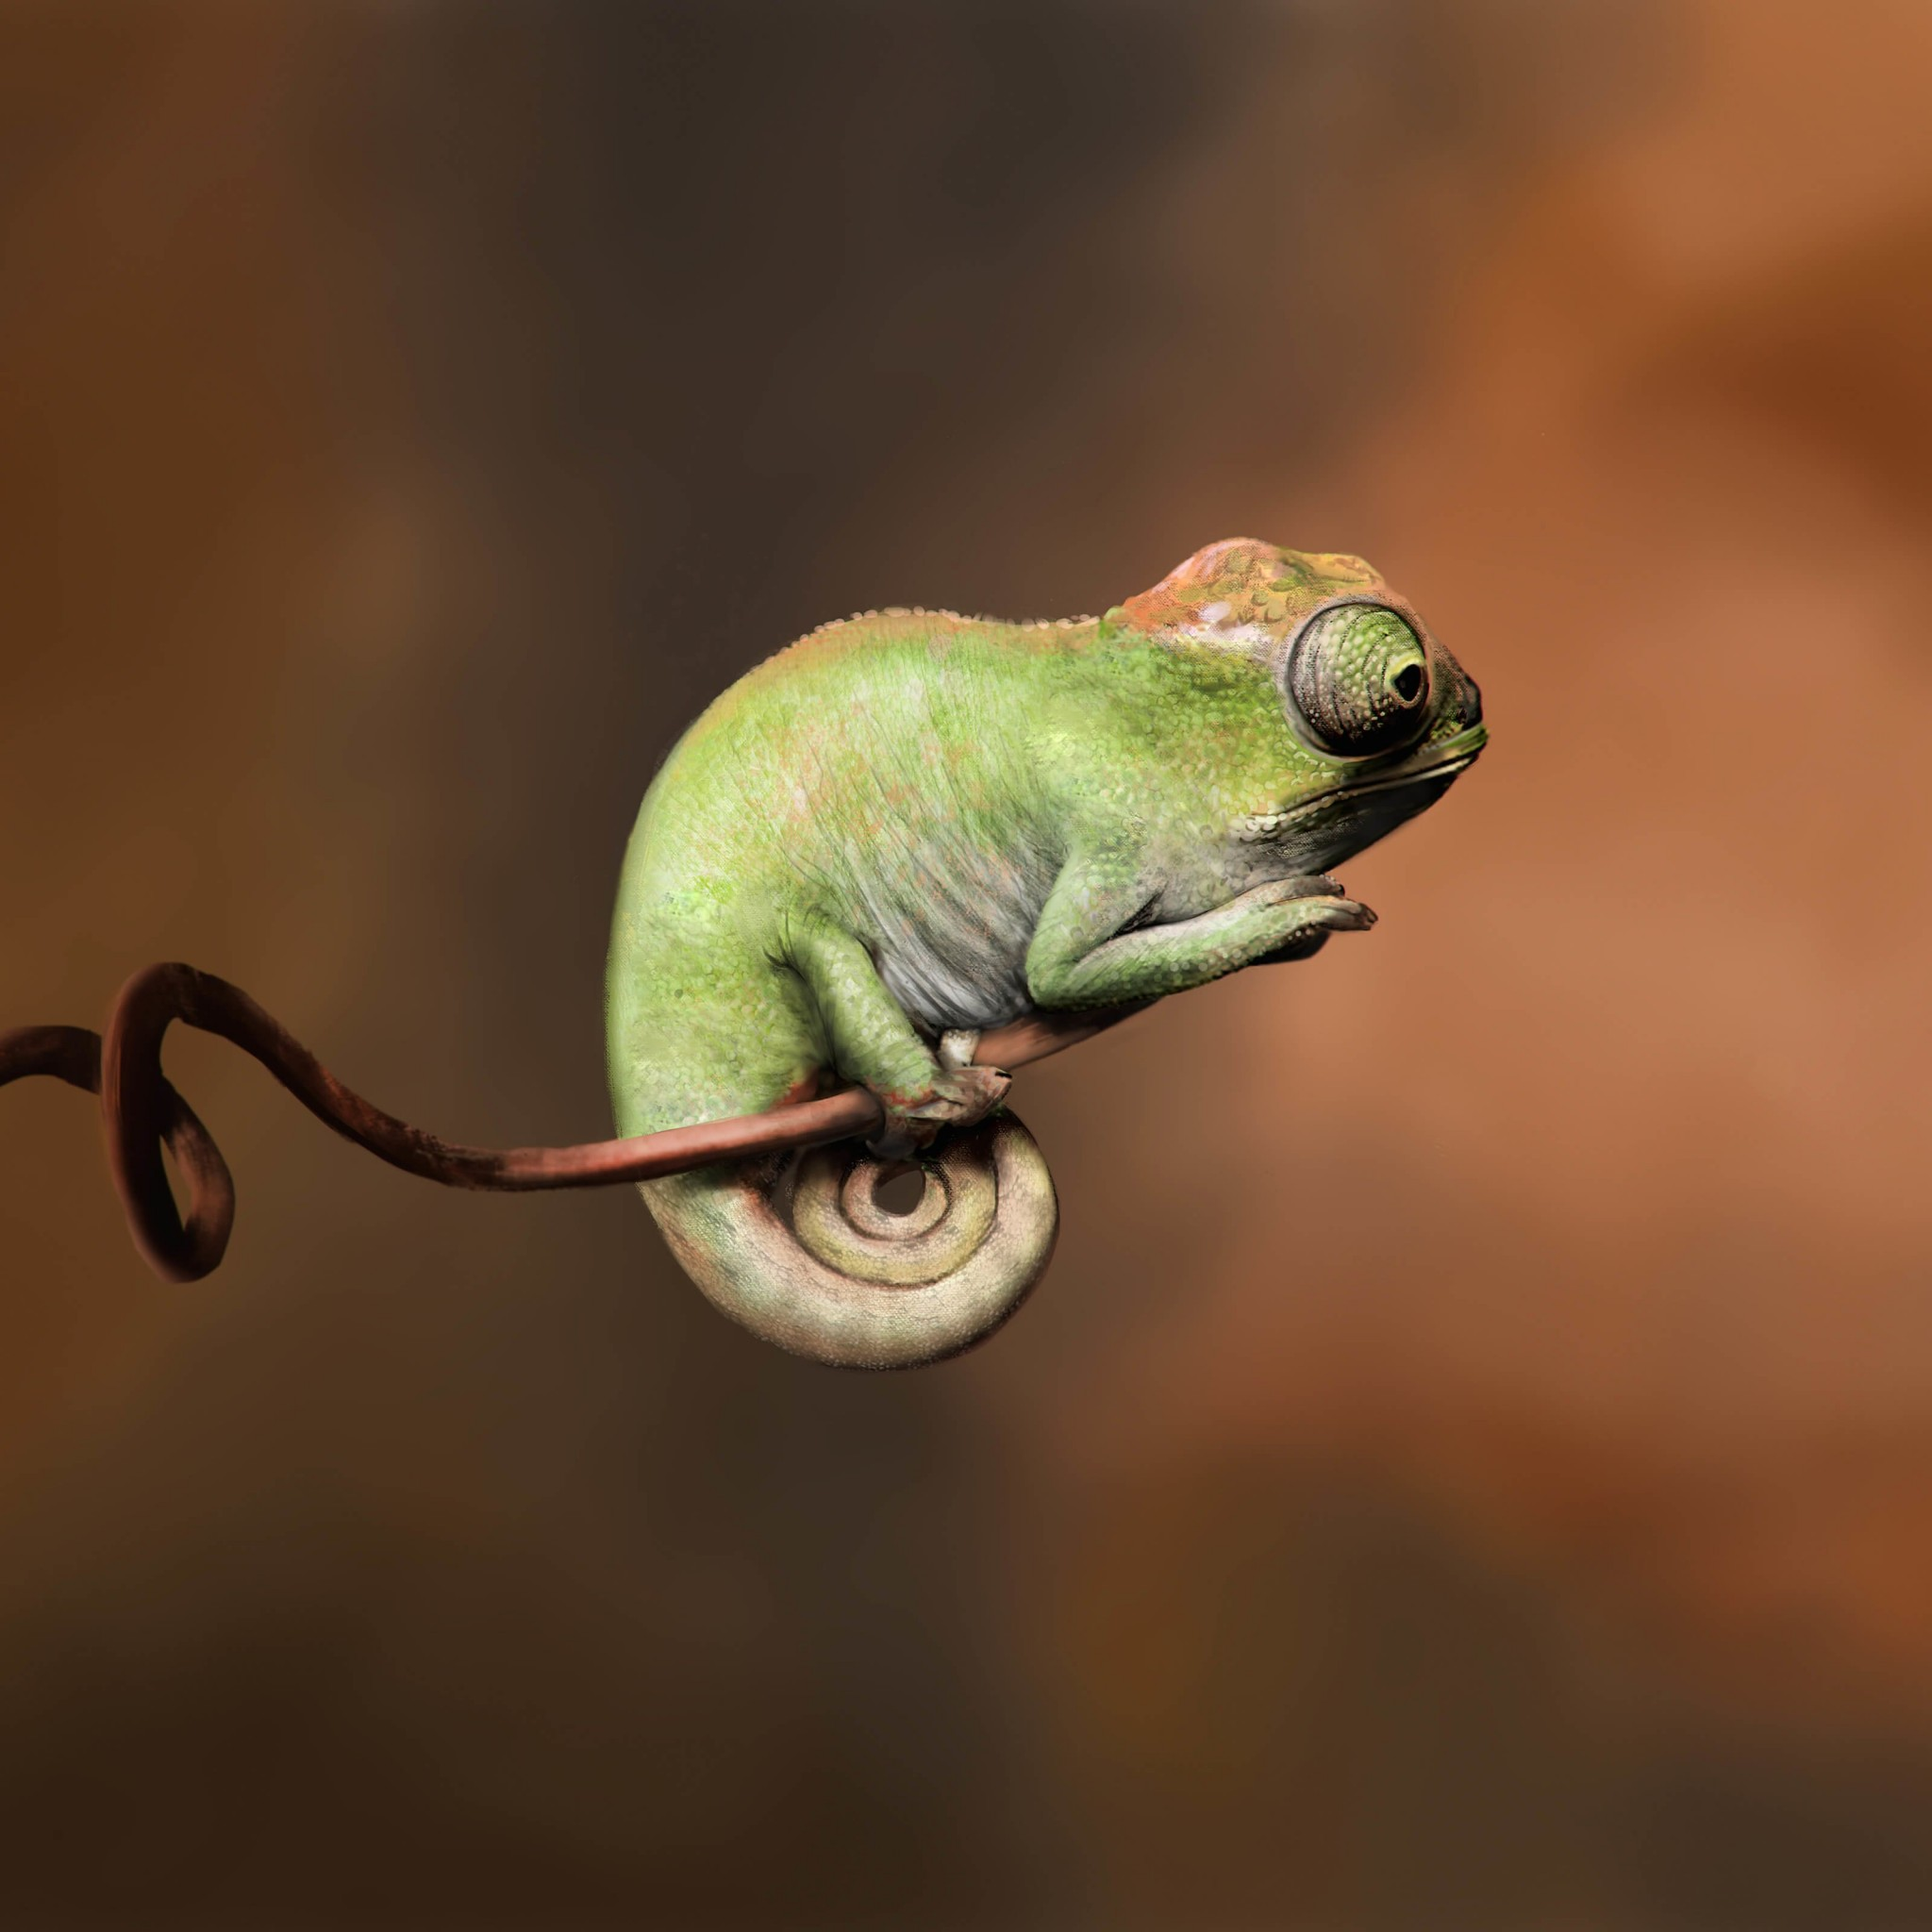 Baby Chameleon Perching On a Twisted Branch Wallpaper for Google Nexus 9